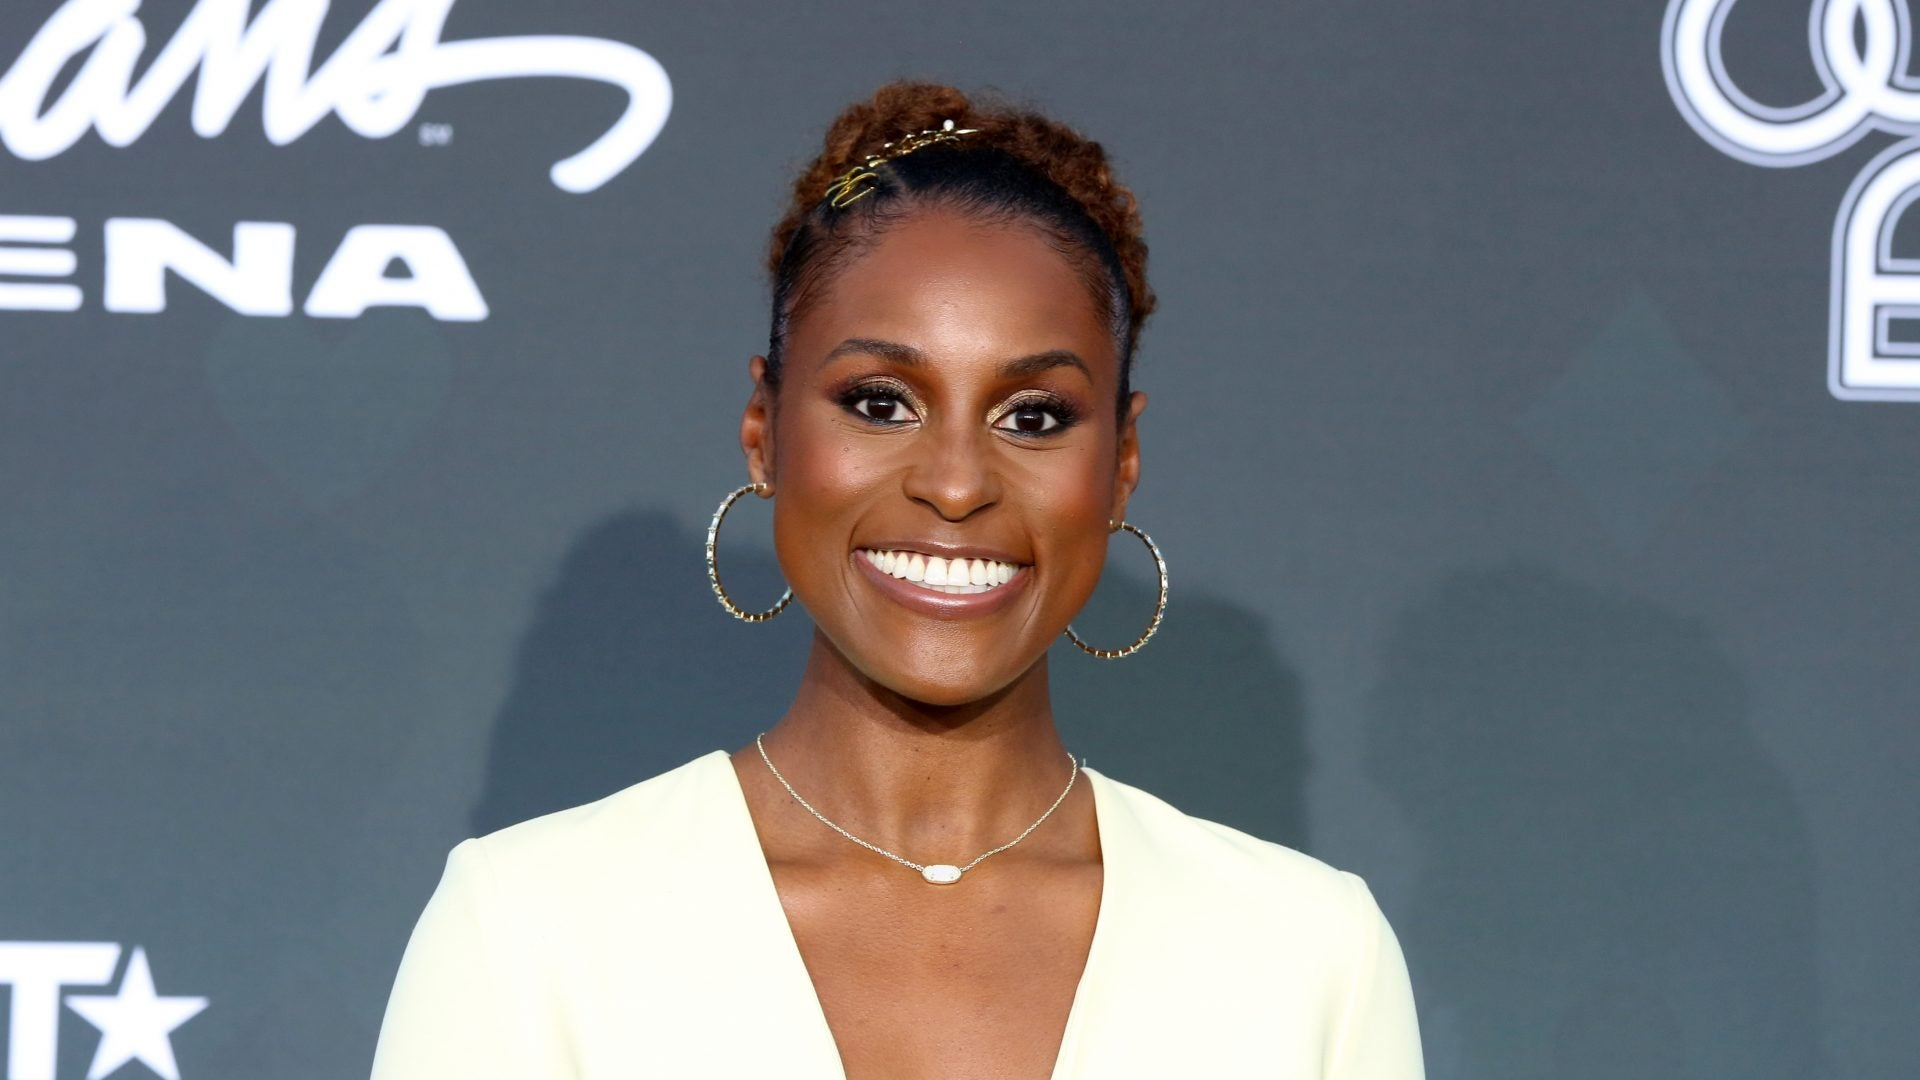 Issa Rae Highlighted The Lack Of Women In This Year's Oscar Nominees For Best Director